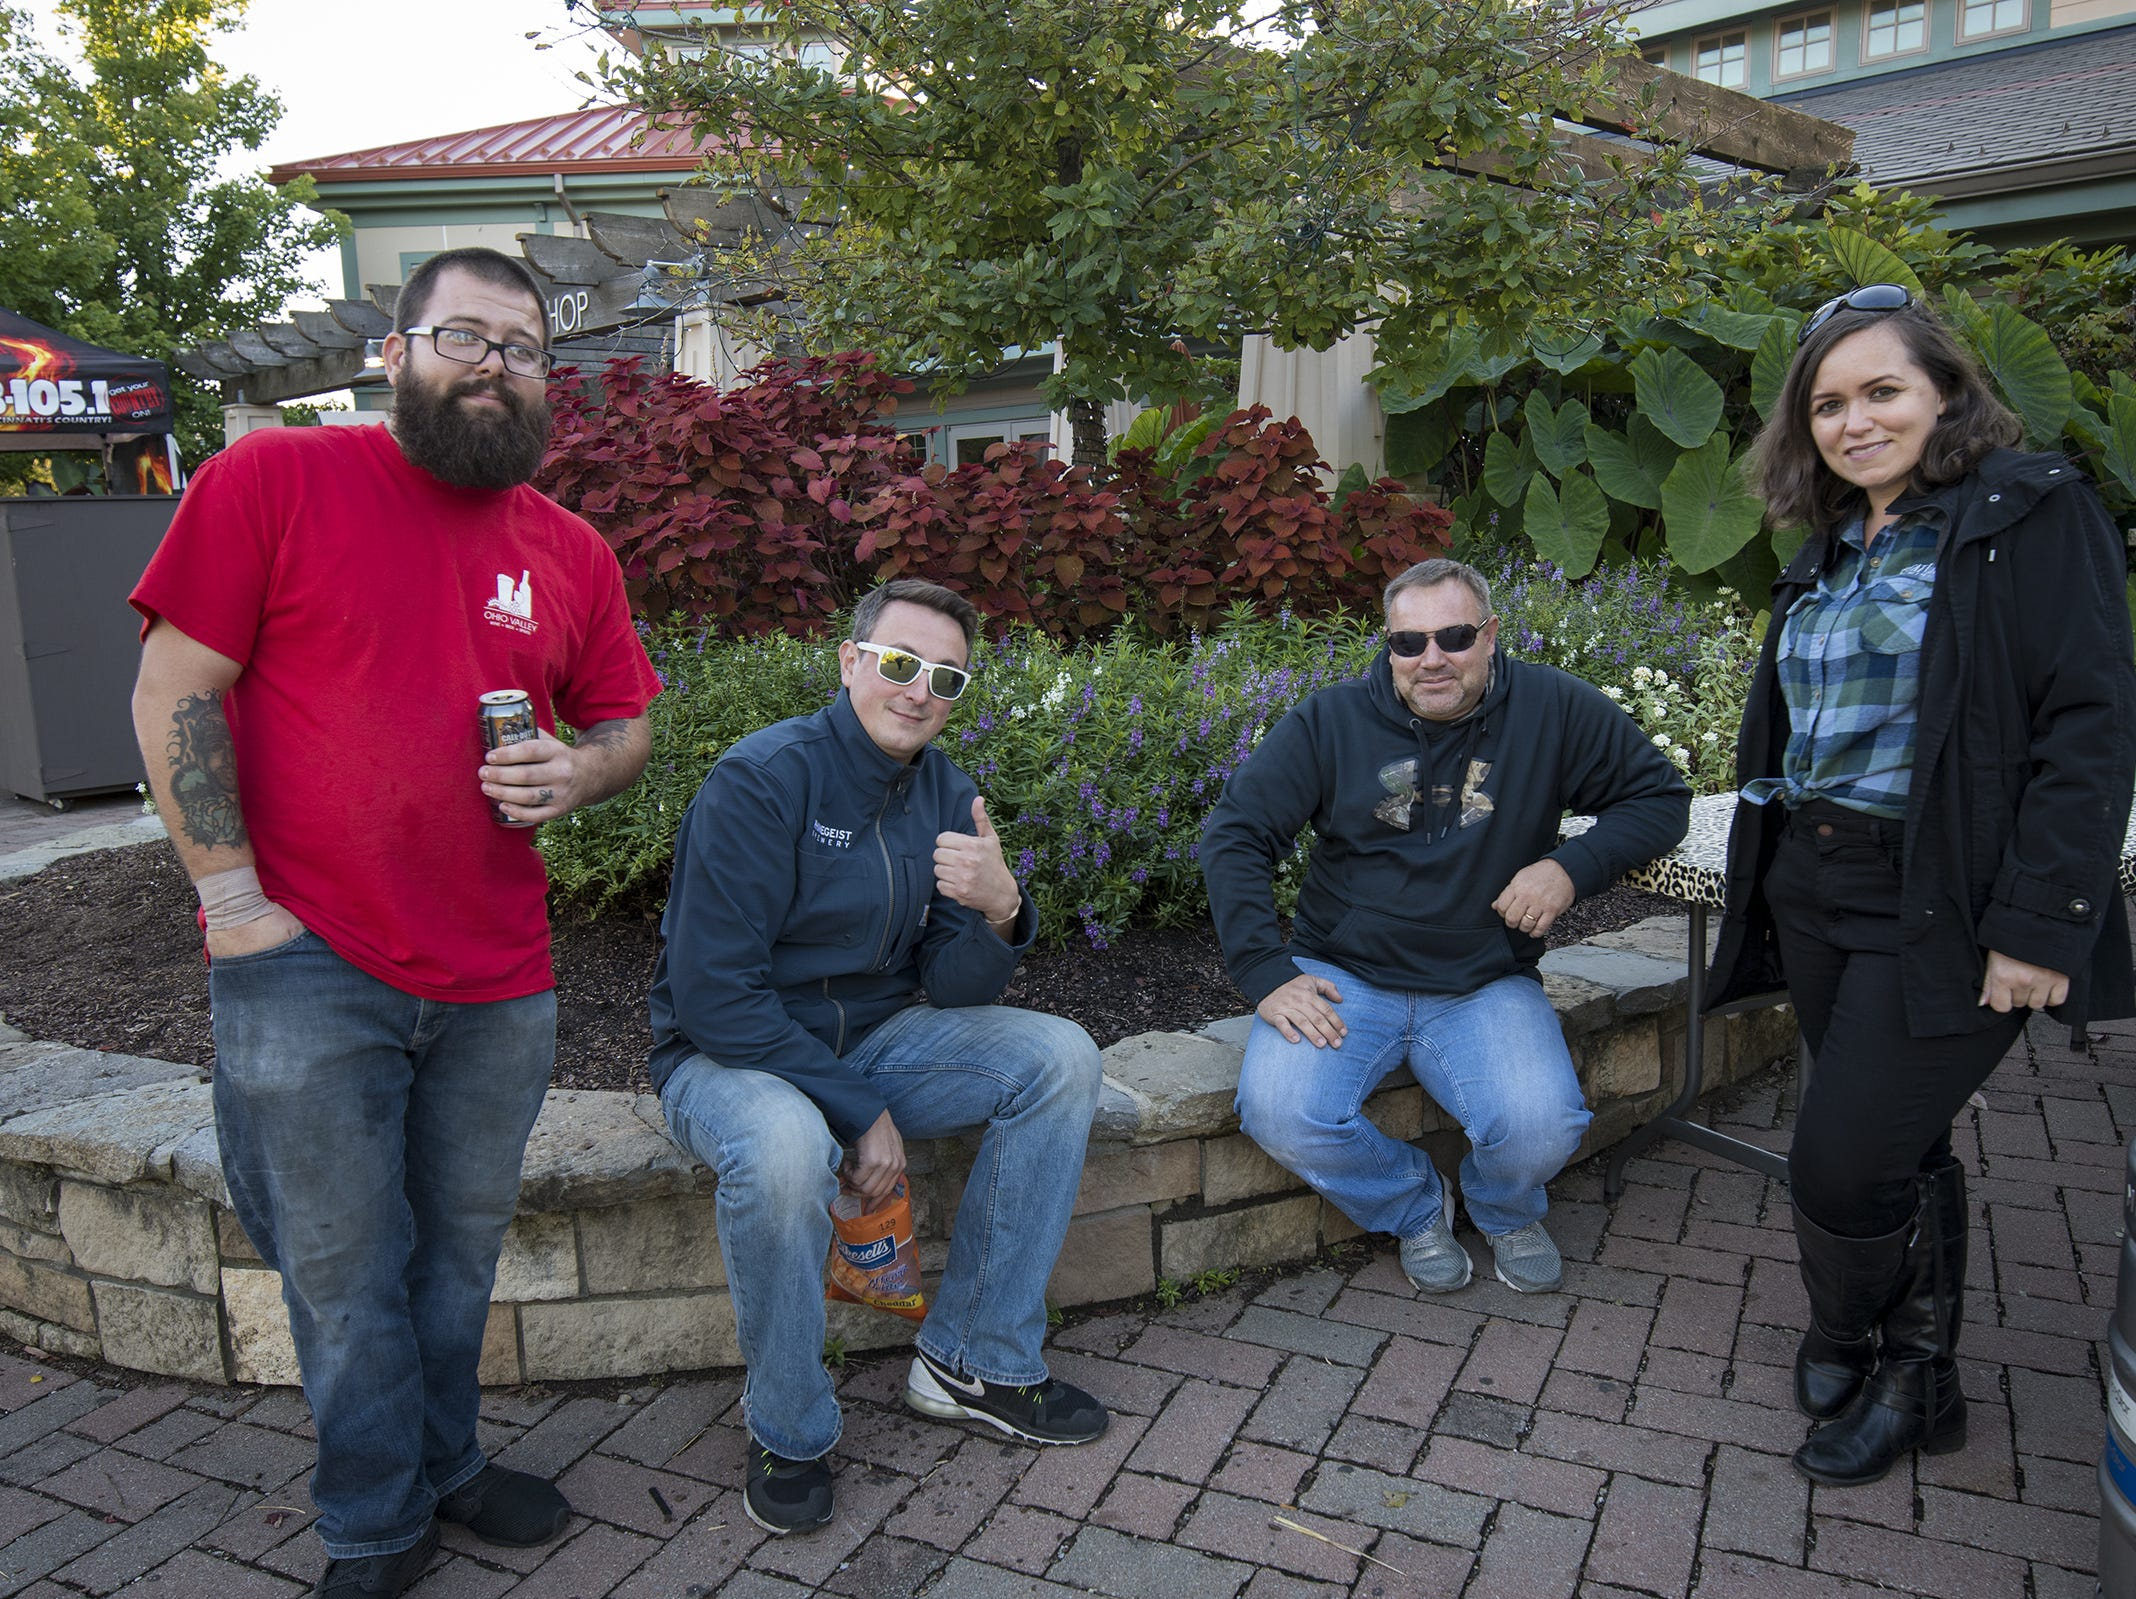 Casey Caudill, Brett DiMarcello, Jason Sexton and Susan Bernstein represent local breweries during Zoo Brew.